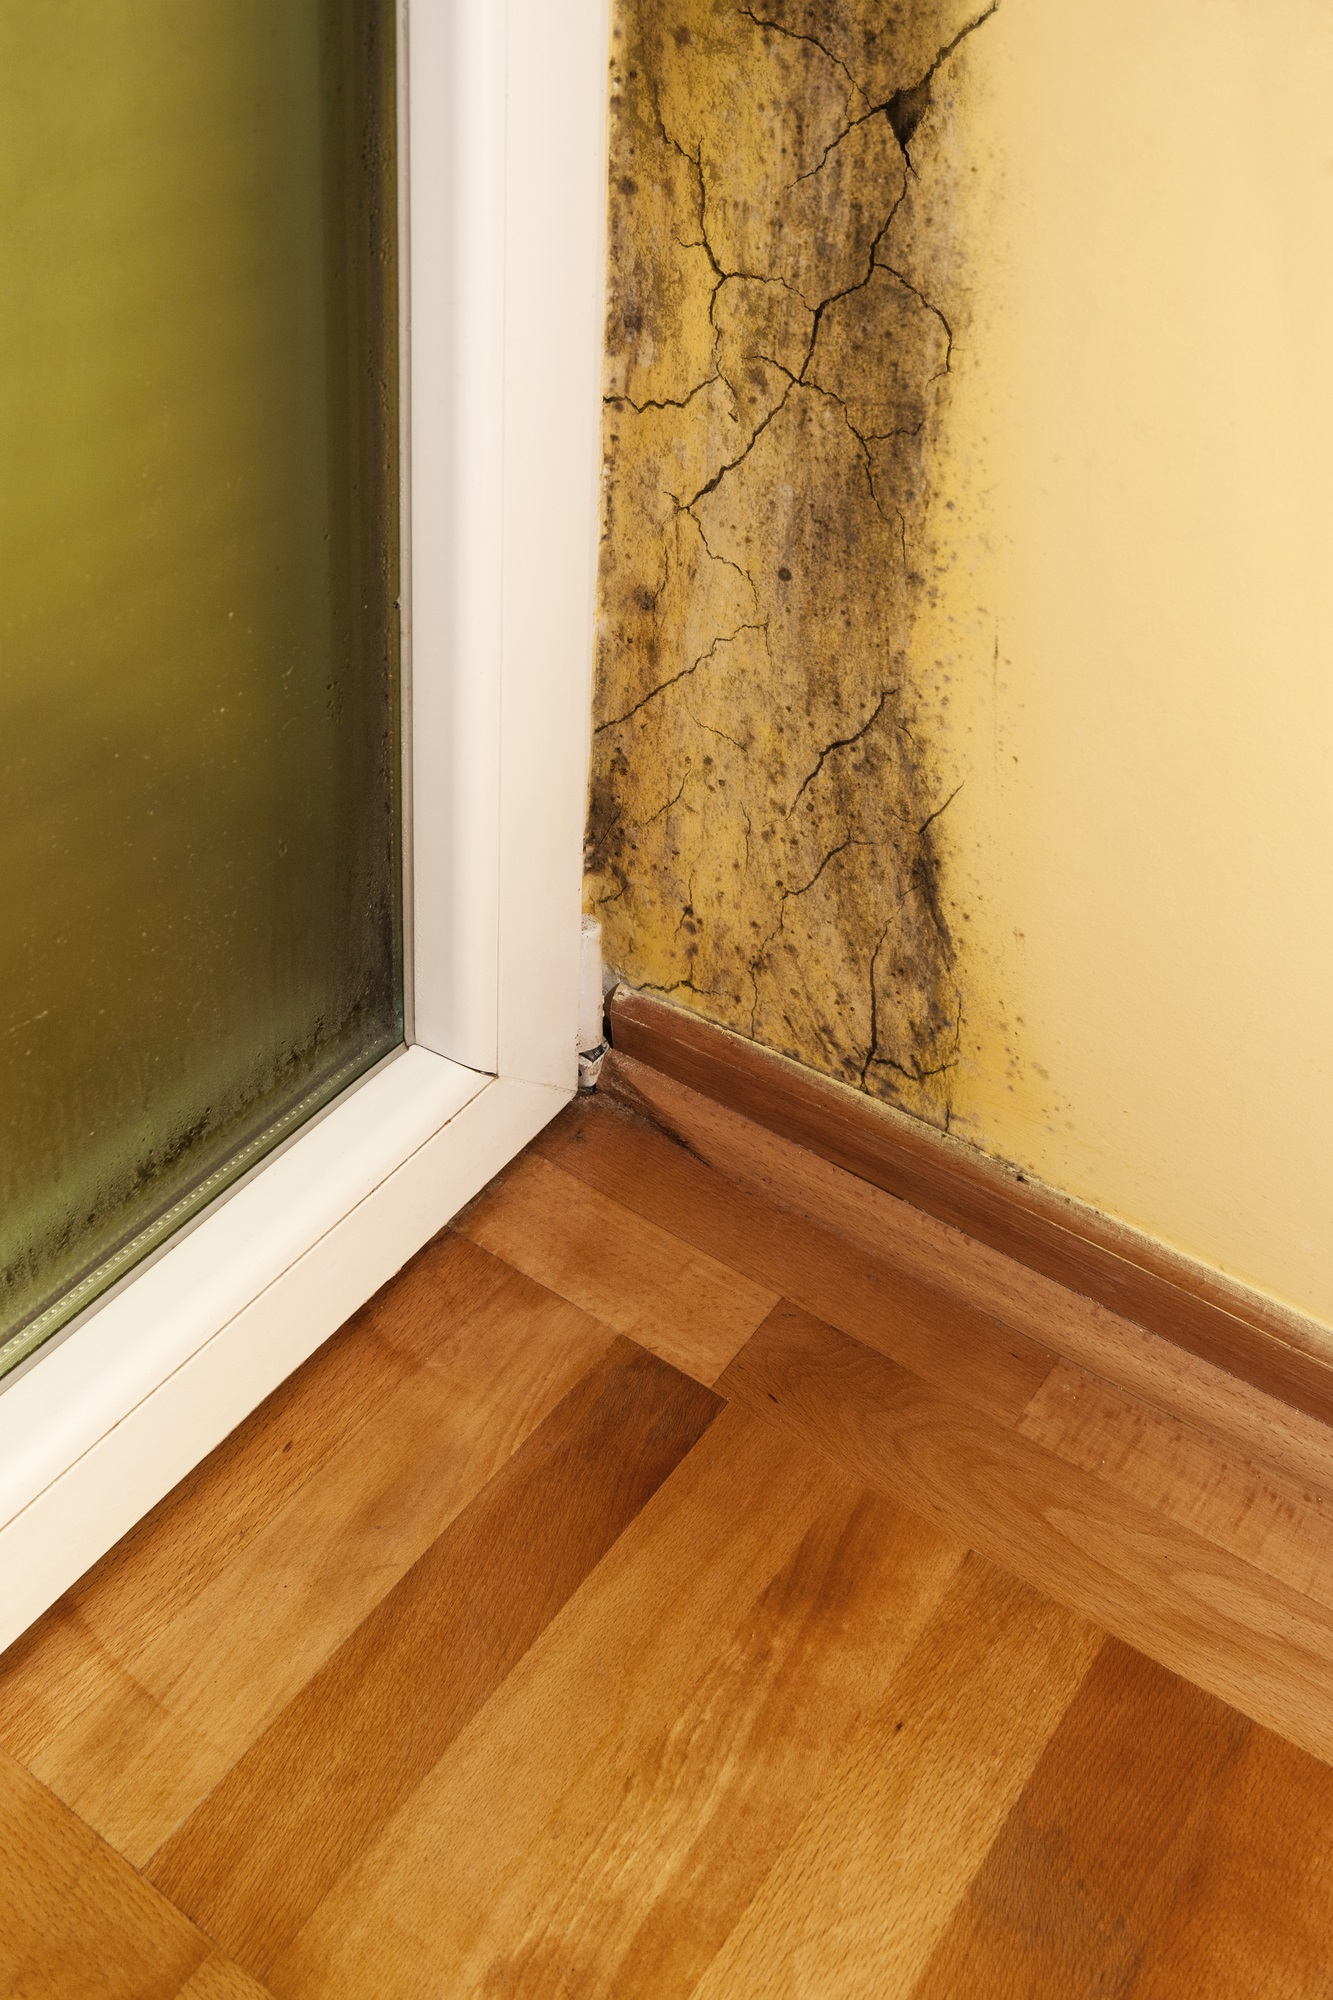 Mold Specialist Doctor